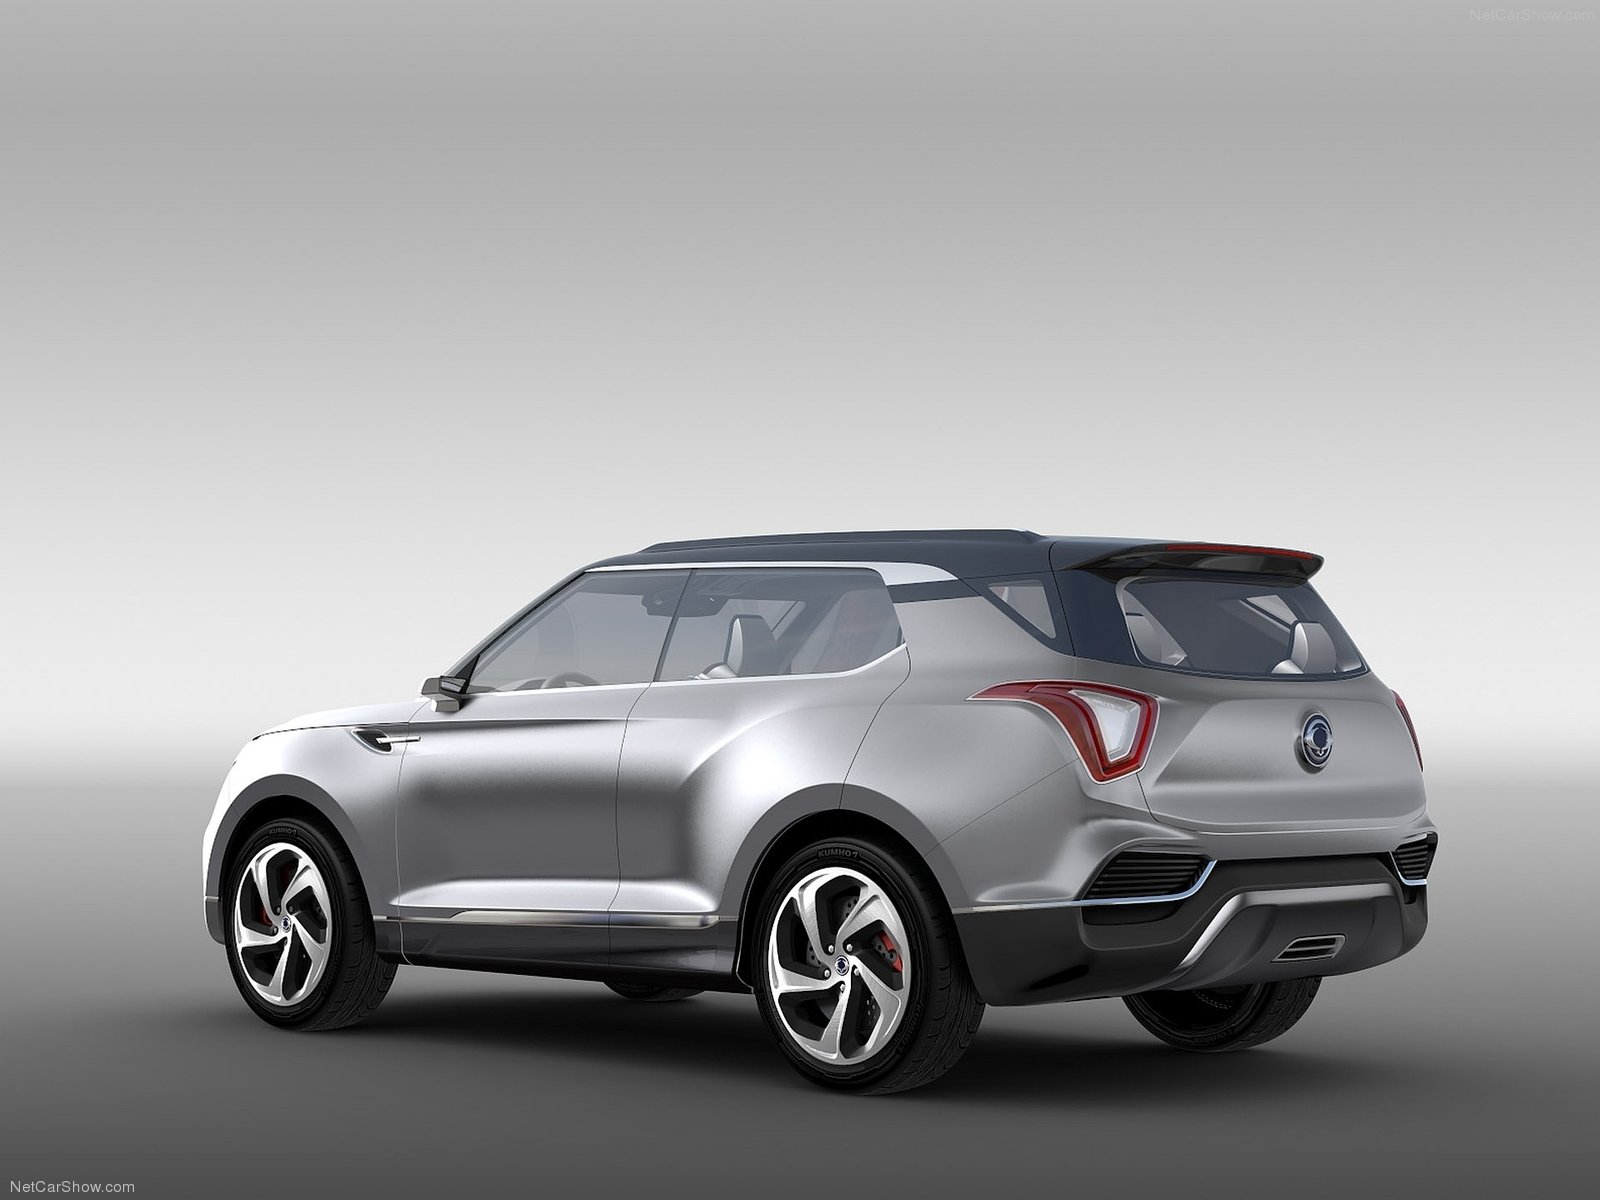 SsangYong XLV Concept photo 111251